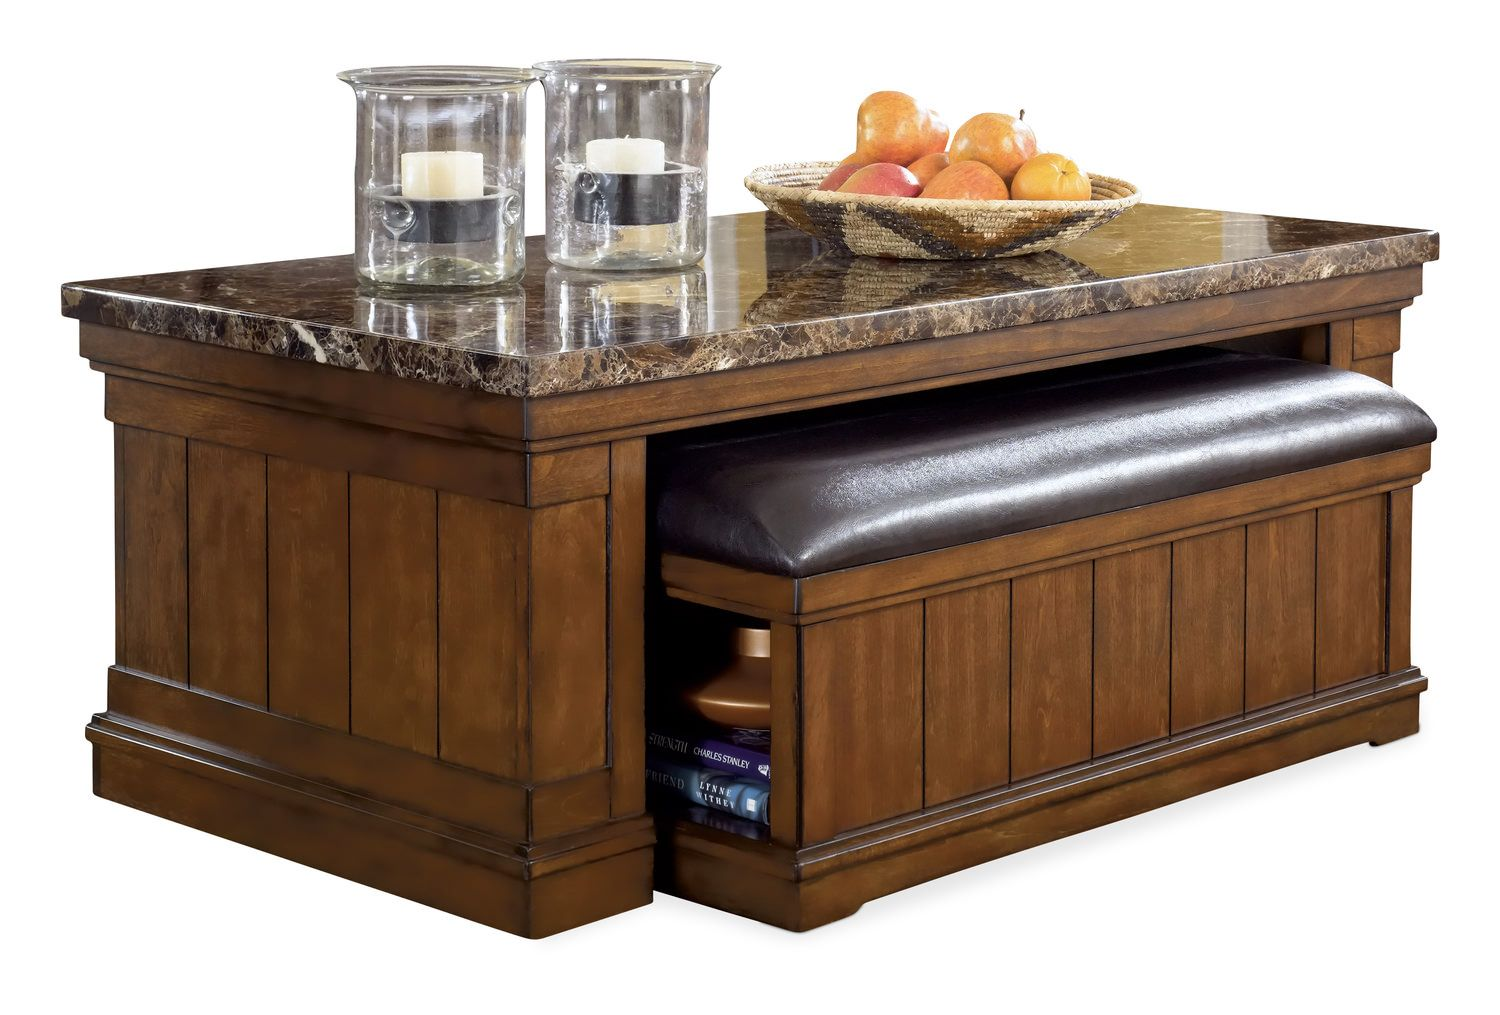 merihill coffee table with ottoman | leather living room